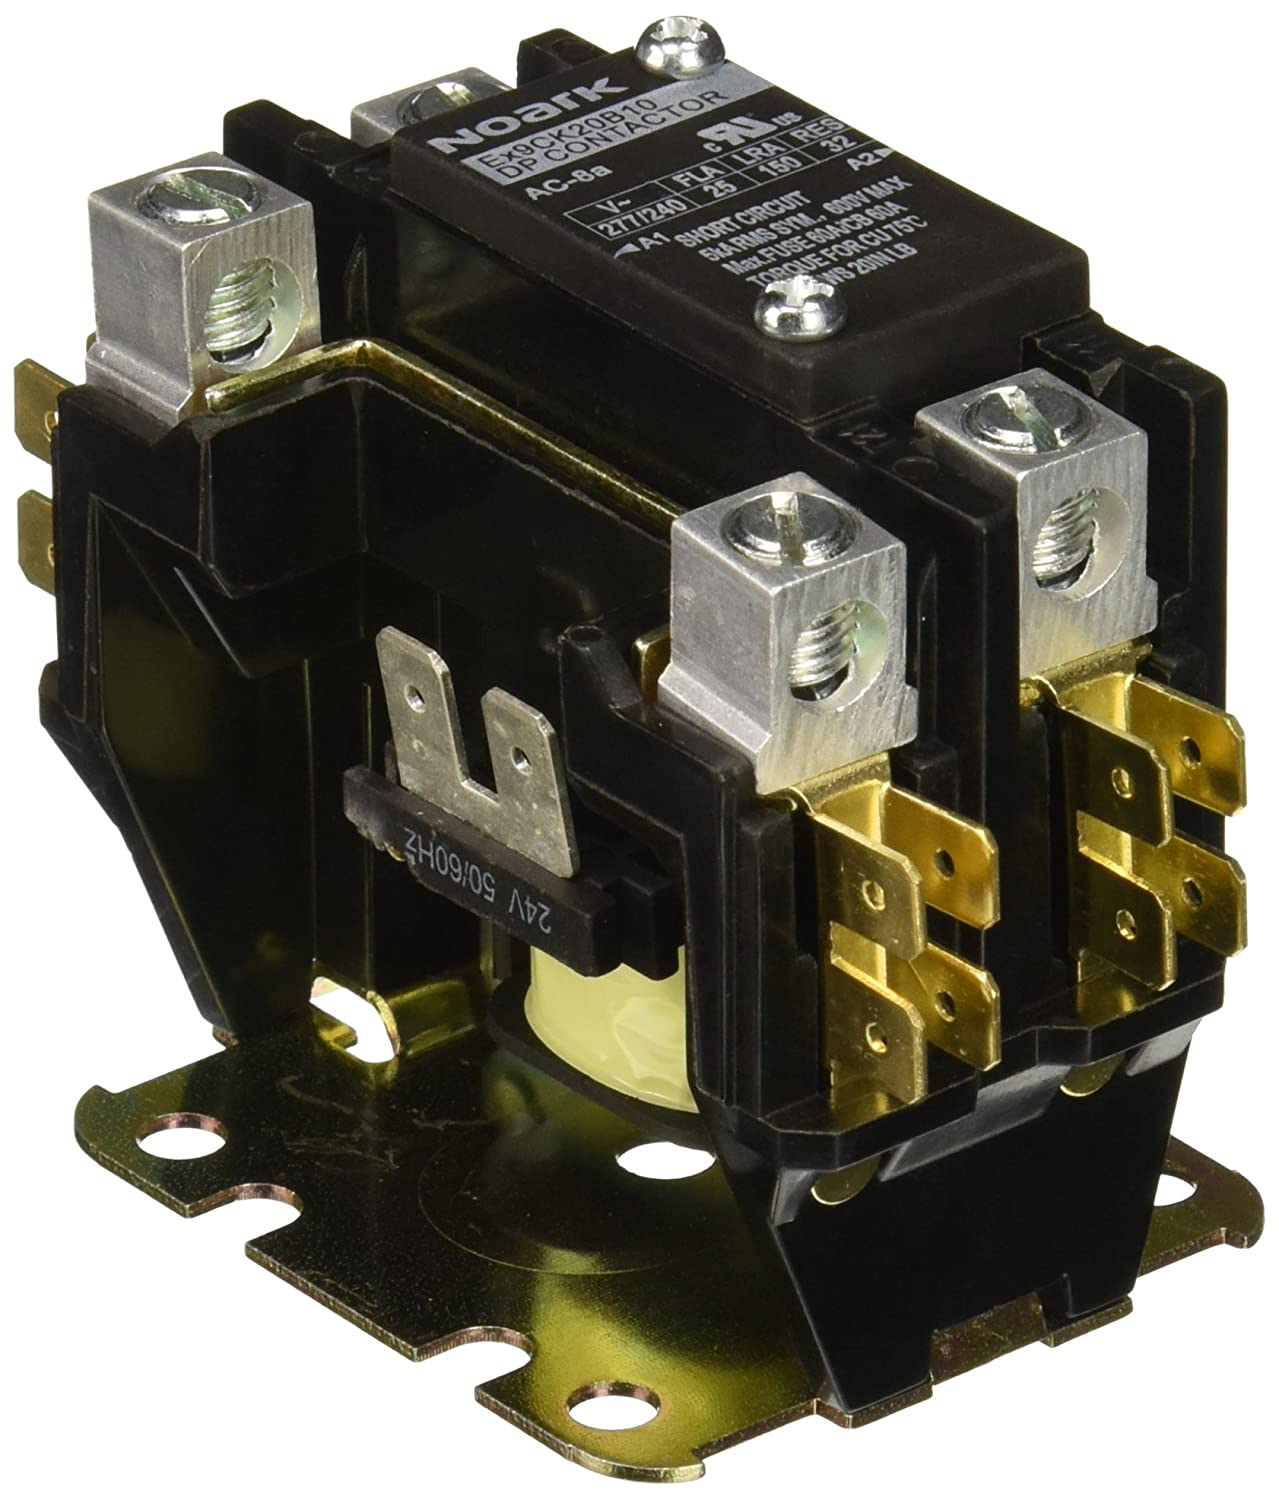 81xnZJyPFCL._SL1500_ noark electric ex9ck20b10b7 definite purpose contactor, lug definite purpose contactor wiring diagram at bayanpartner.co